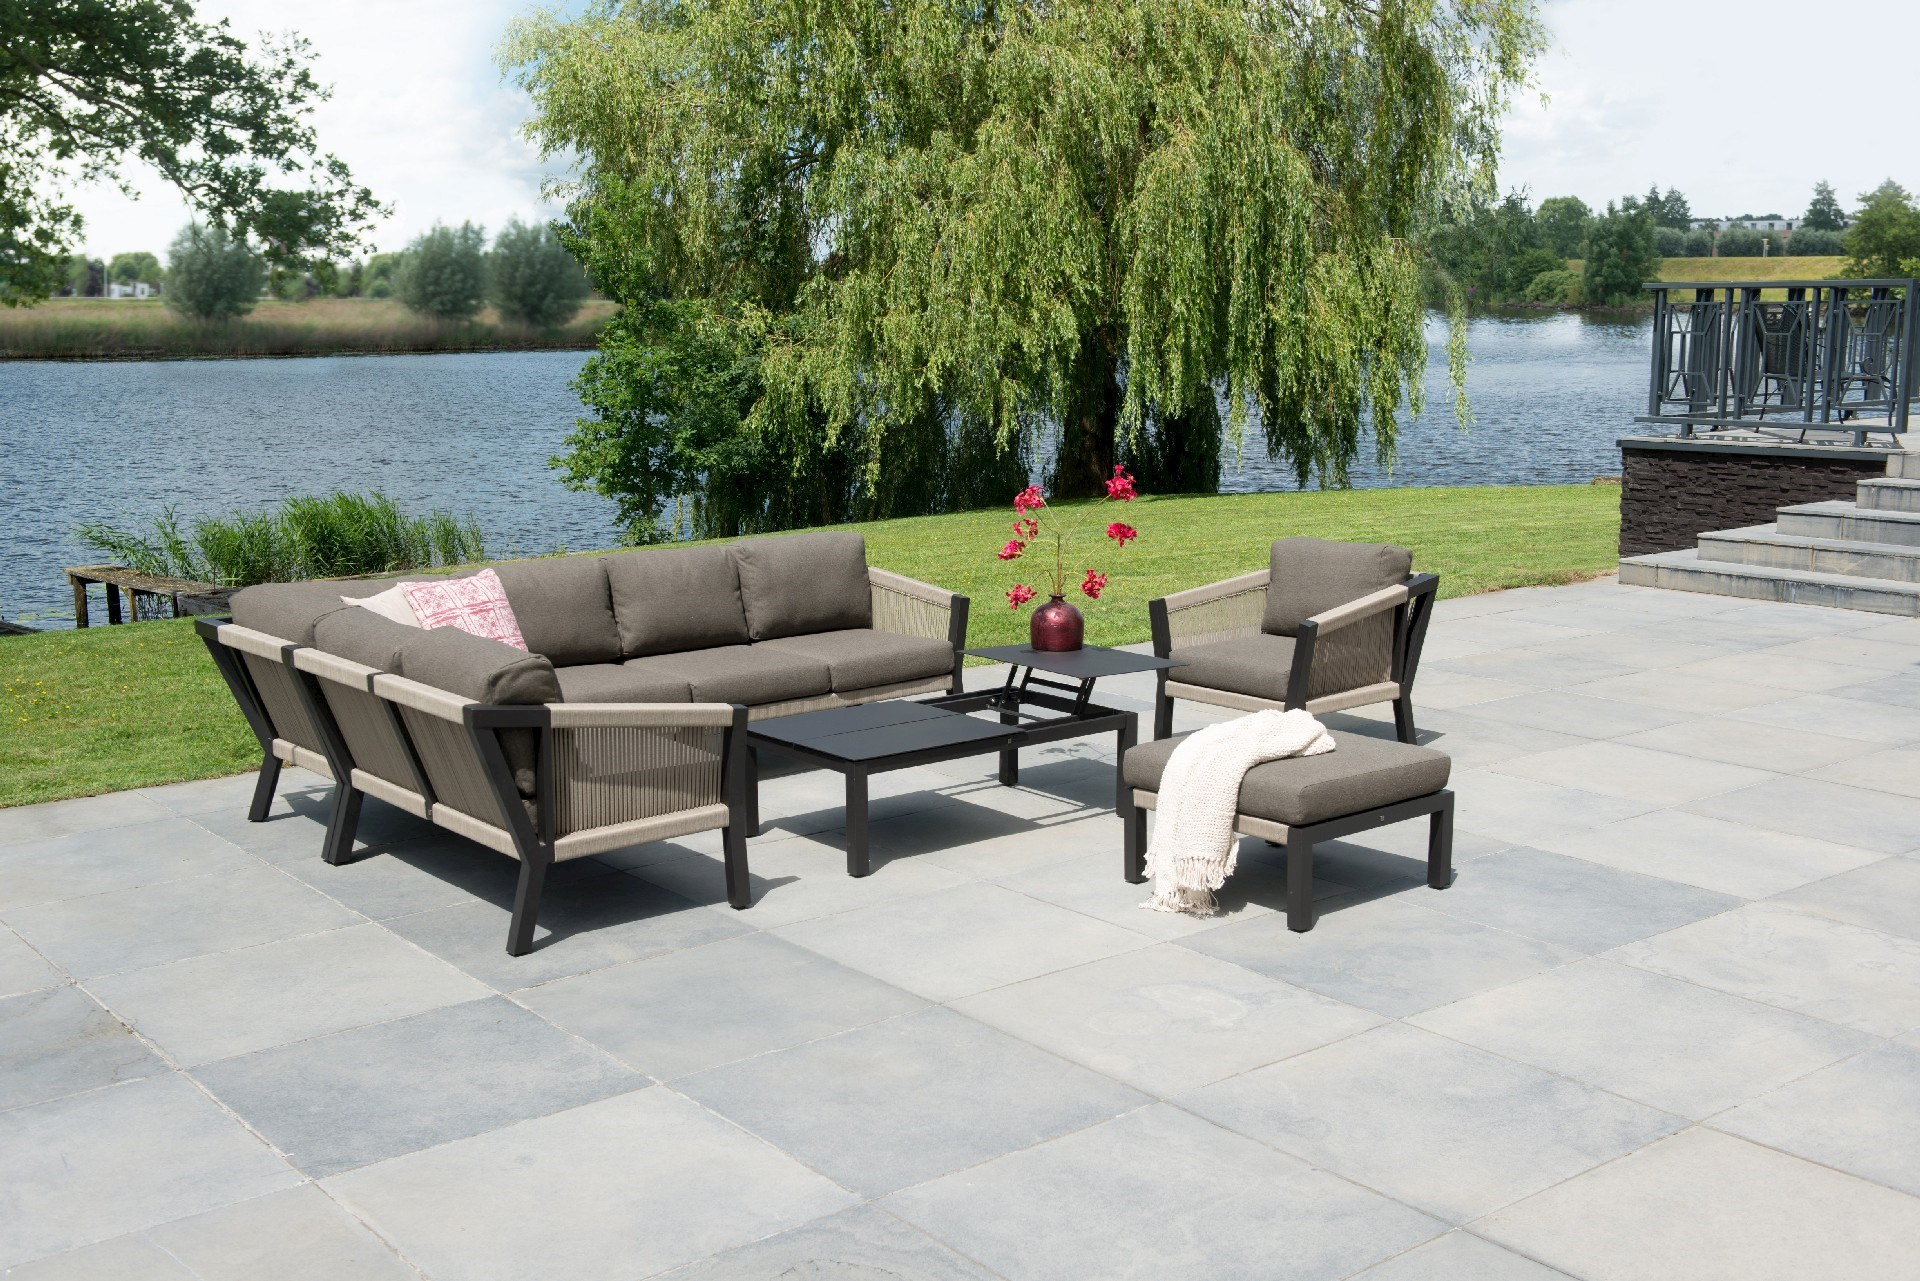 Loungeset tuin sale simple loungesets loungesets voor in uw tuin